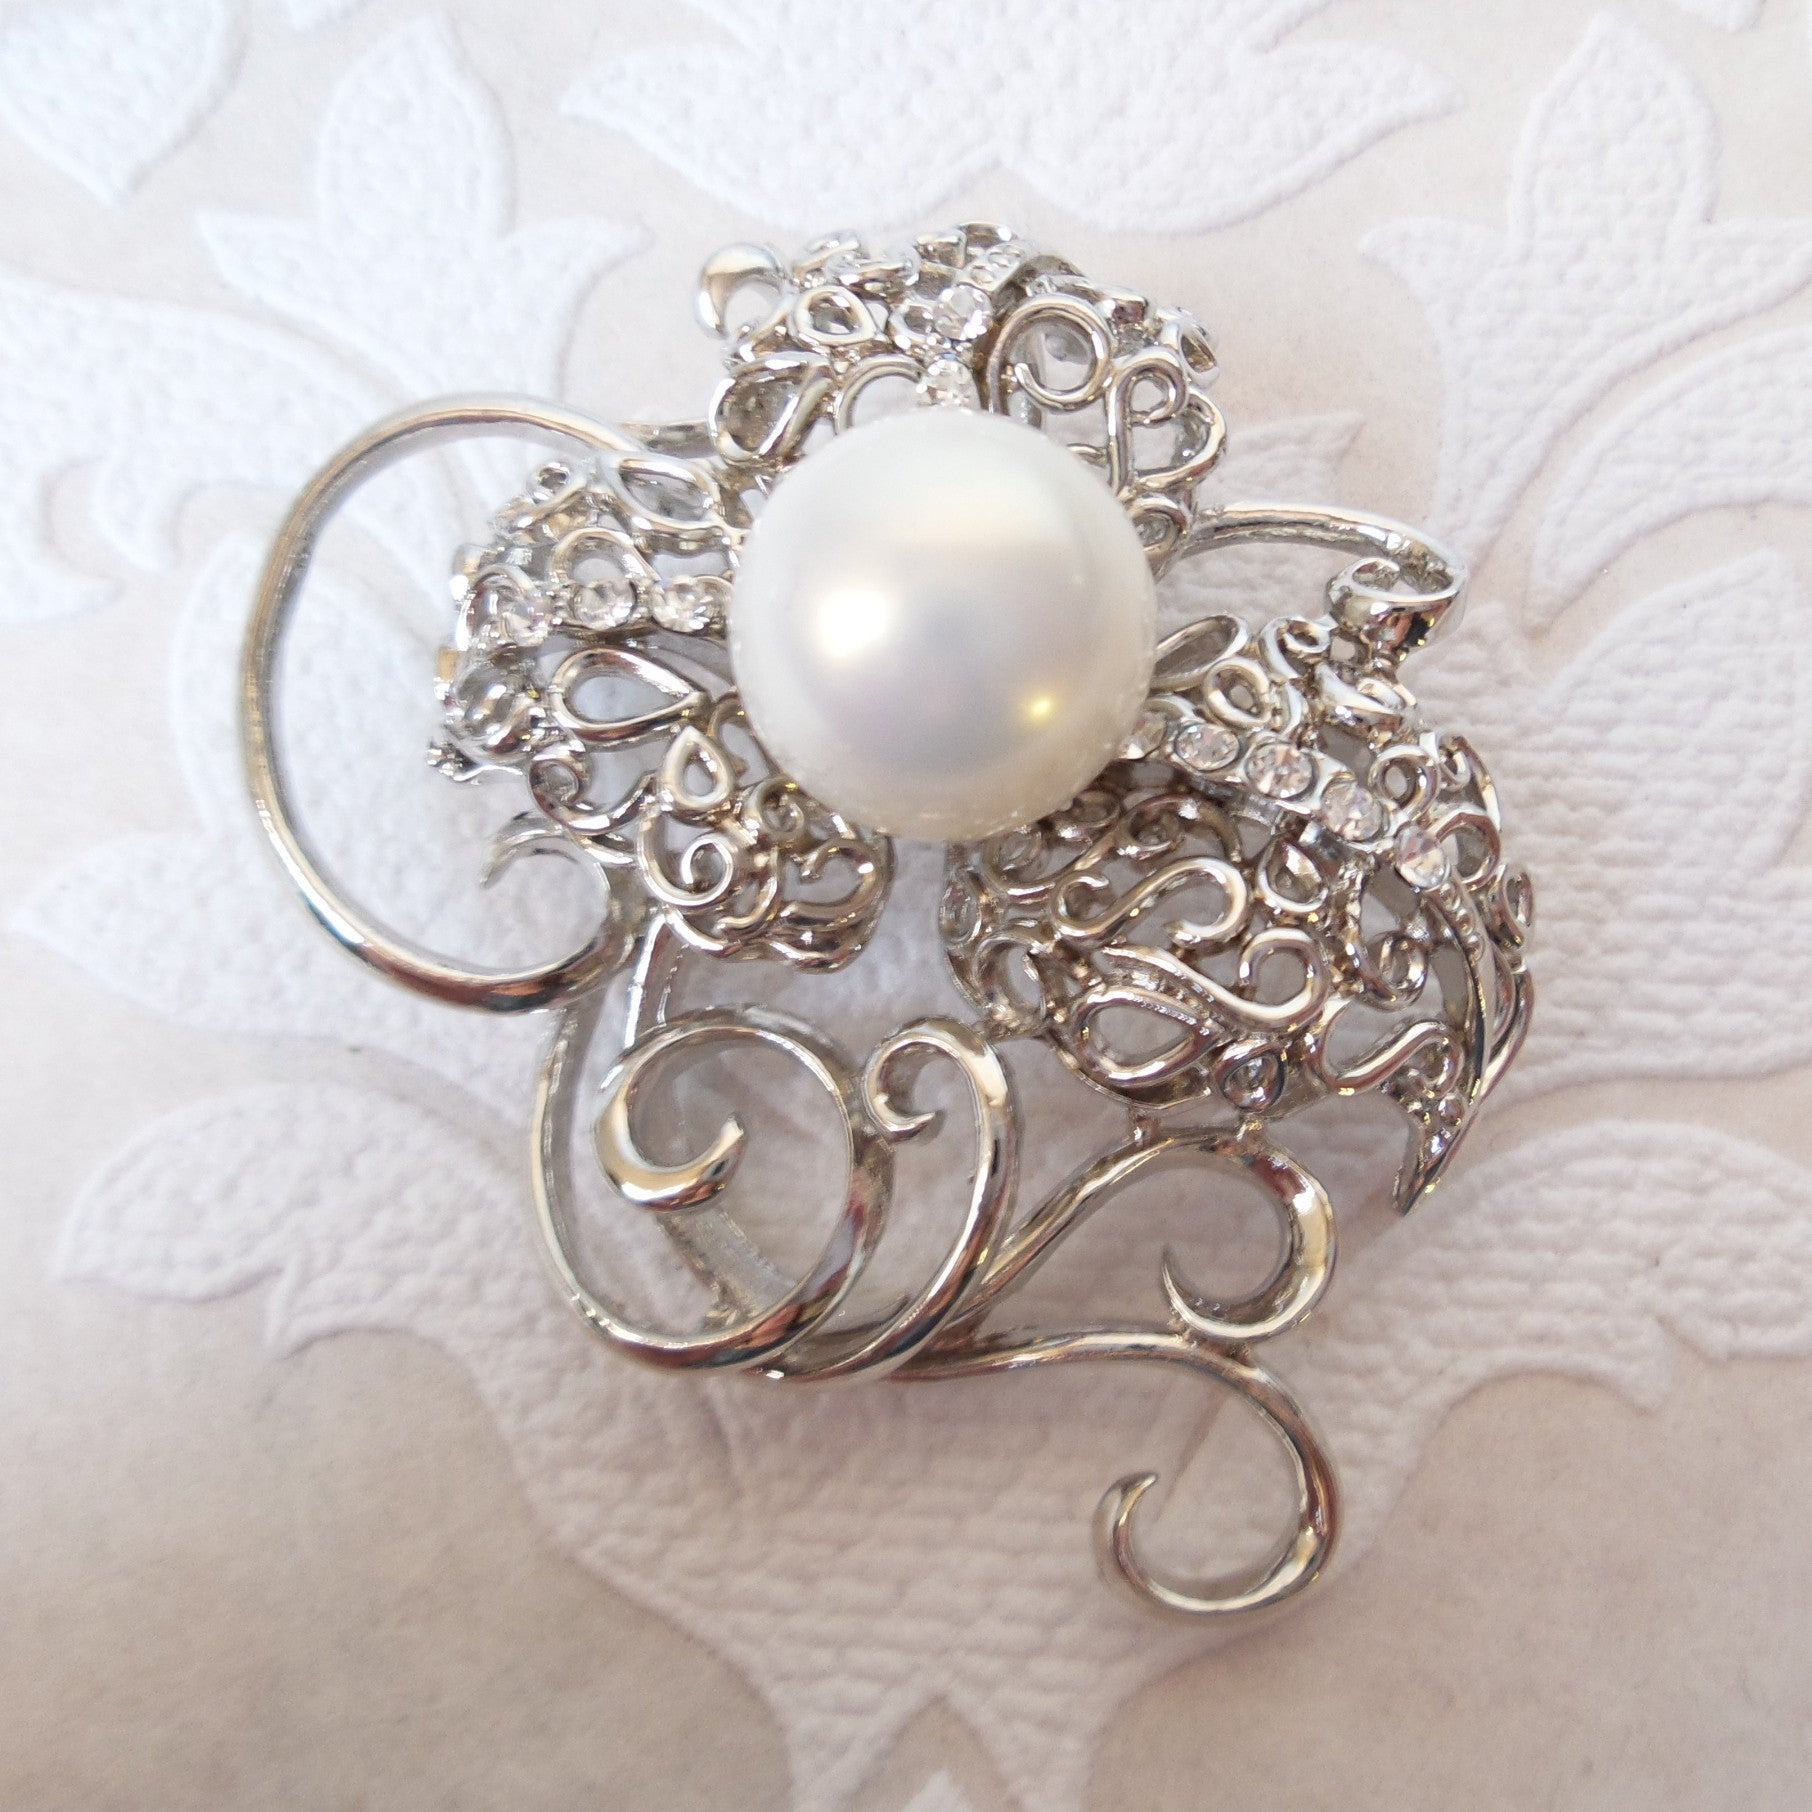 Floral Bridal Brooch Pearl Wedding Pin made with Swarovski Crystal